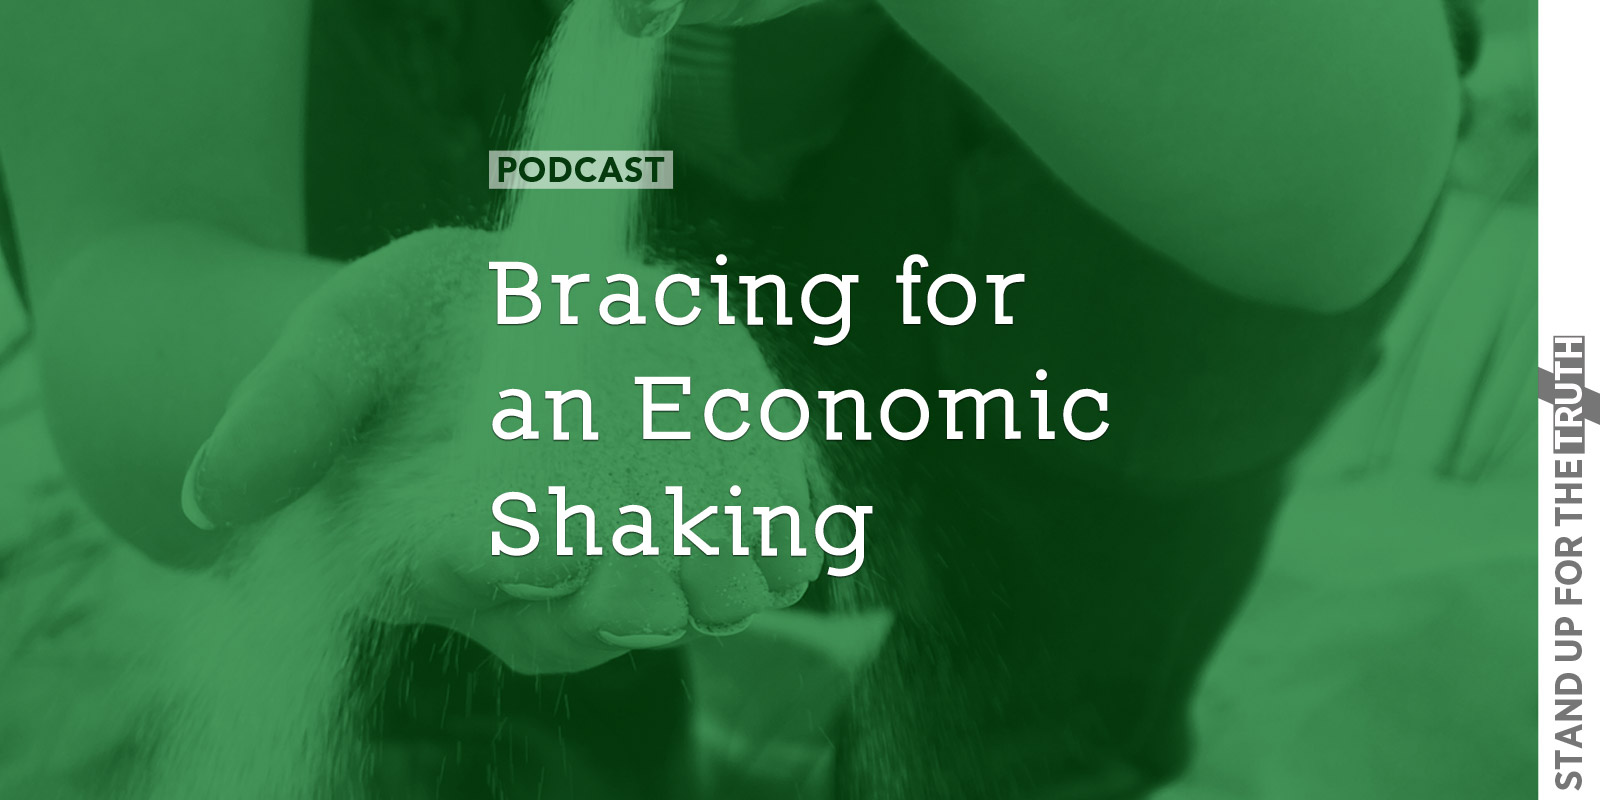 Bracing for an Economic Shaking